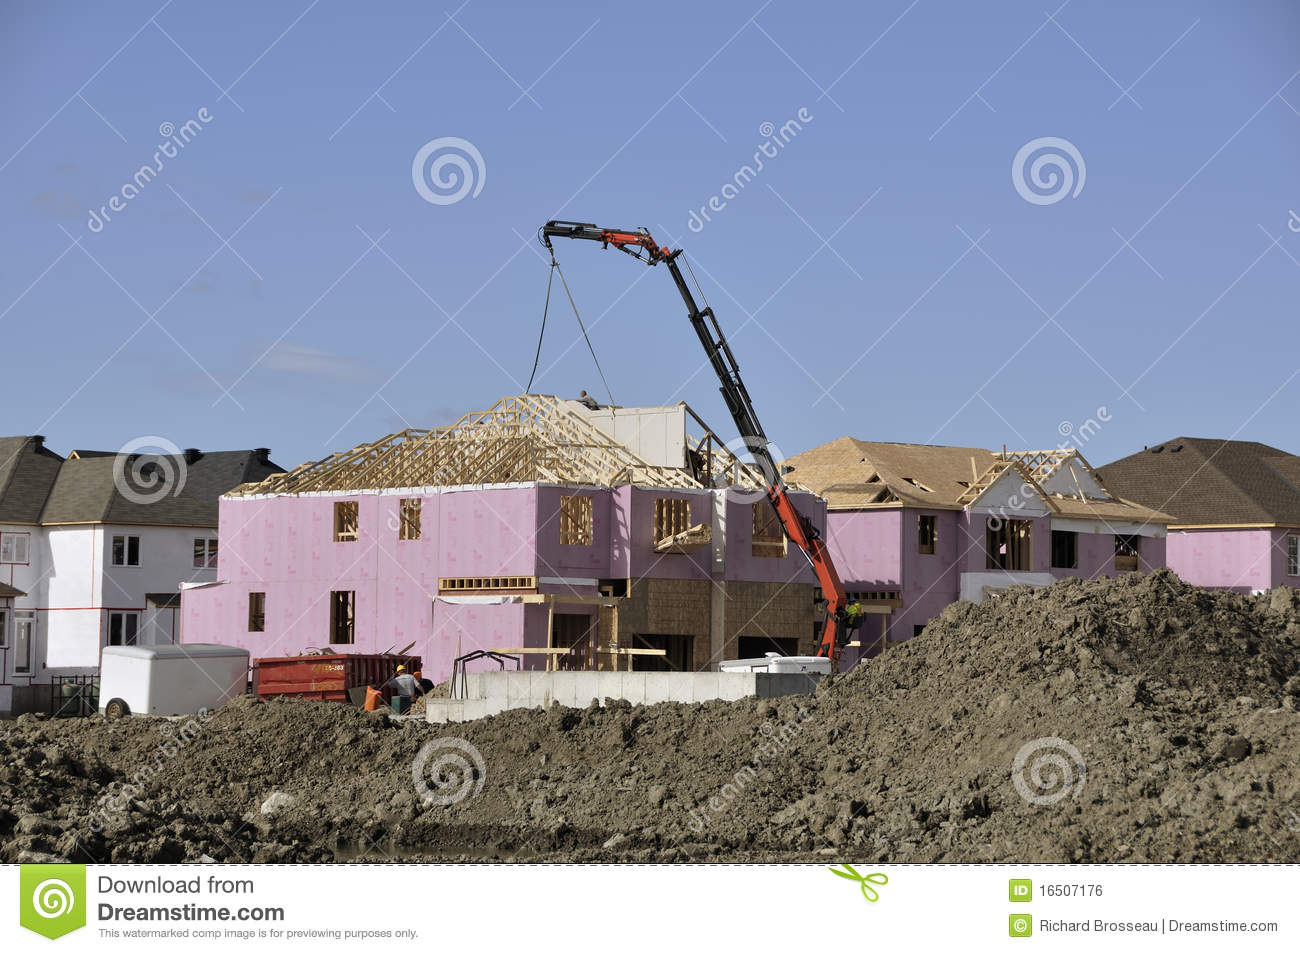 Home Construction Site With Crane Royalty Free Stock Image